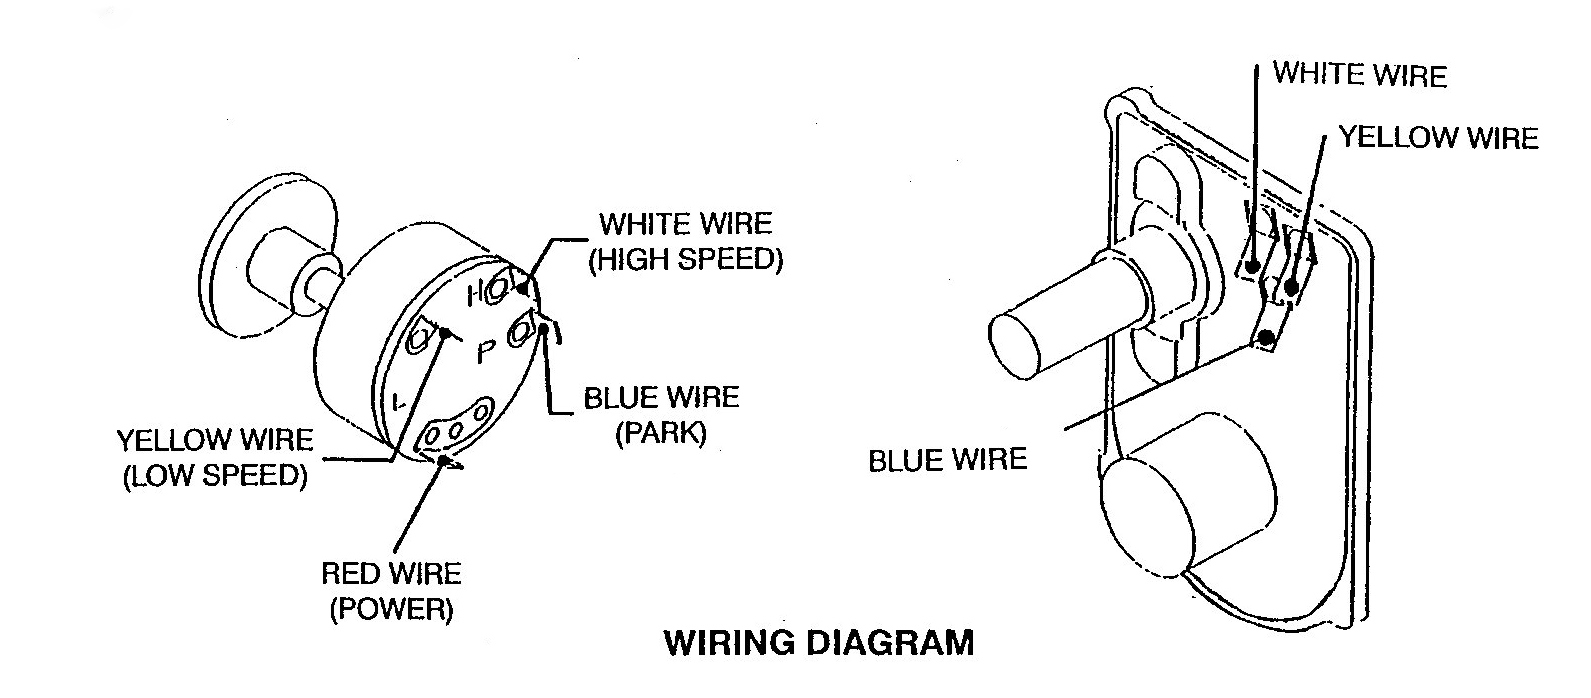 69 Dodge Dart Wiring Diagram. Dodge. Auto Wiring Diagram